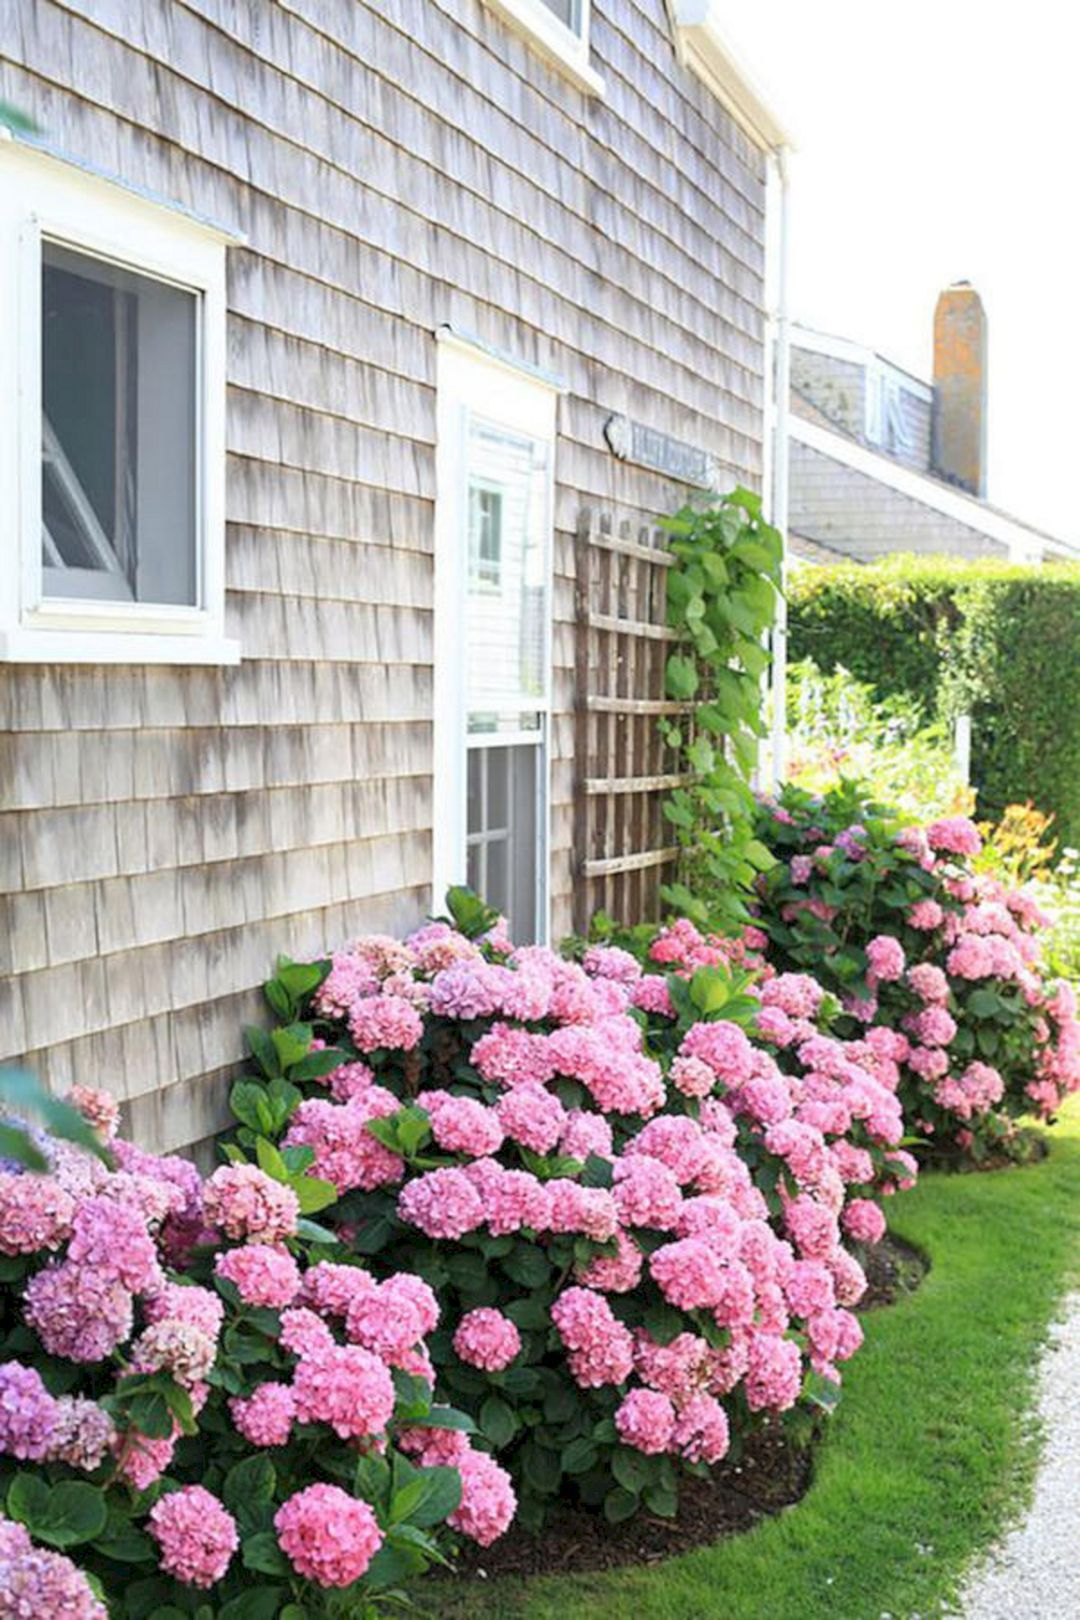 15+ Top And Most Beautiful Hydrangeas Landscaping Ideas To Inspire Most Beautiful Landscape House Design on light house landscapes, most beautiful house architecture, most beautiful house in jamaica, beautiful home landscapes, most beautiful house plants, most beautiful house flowers,